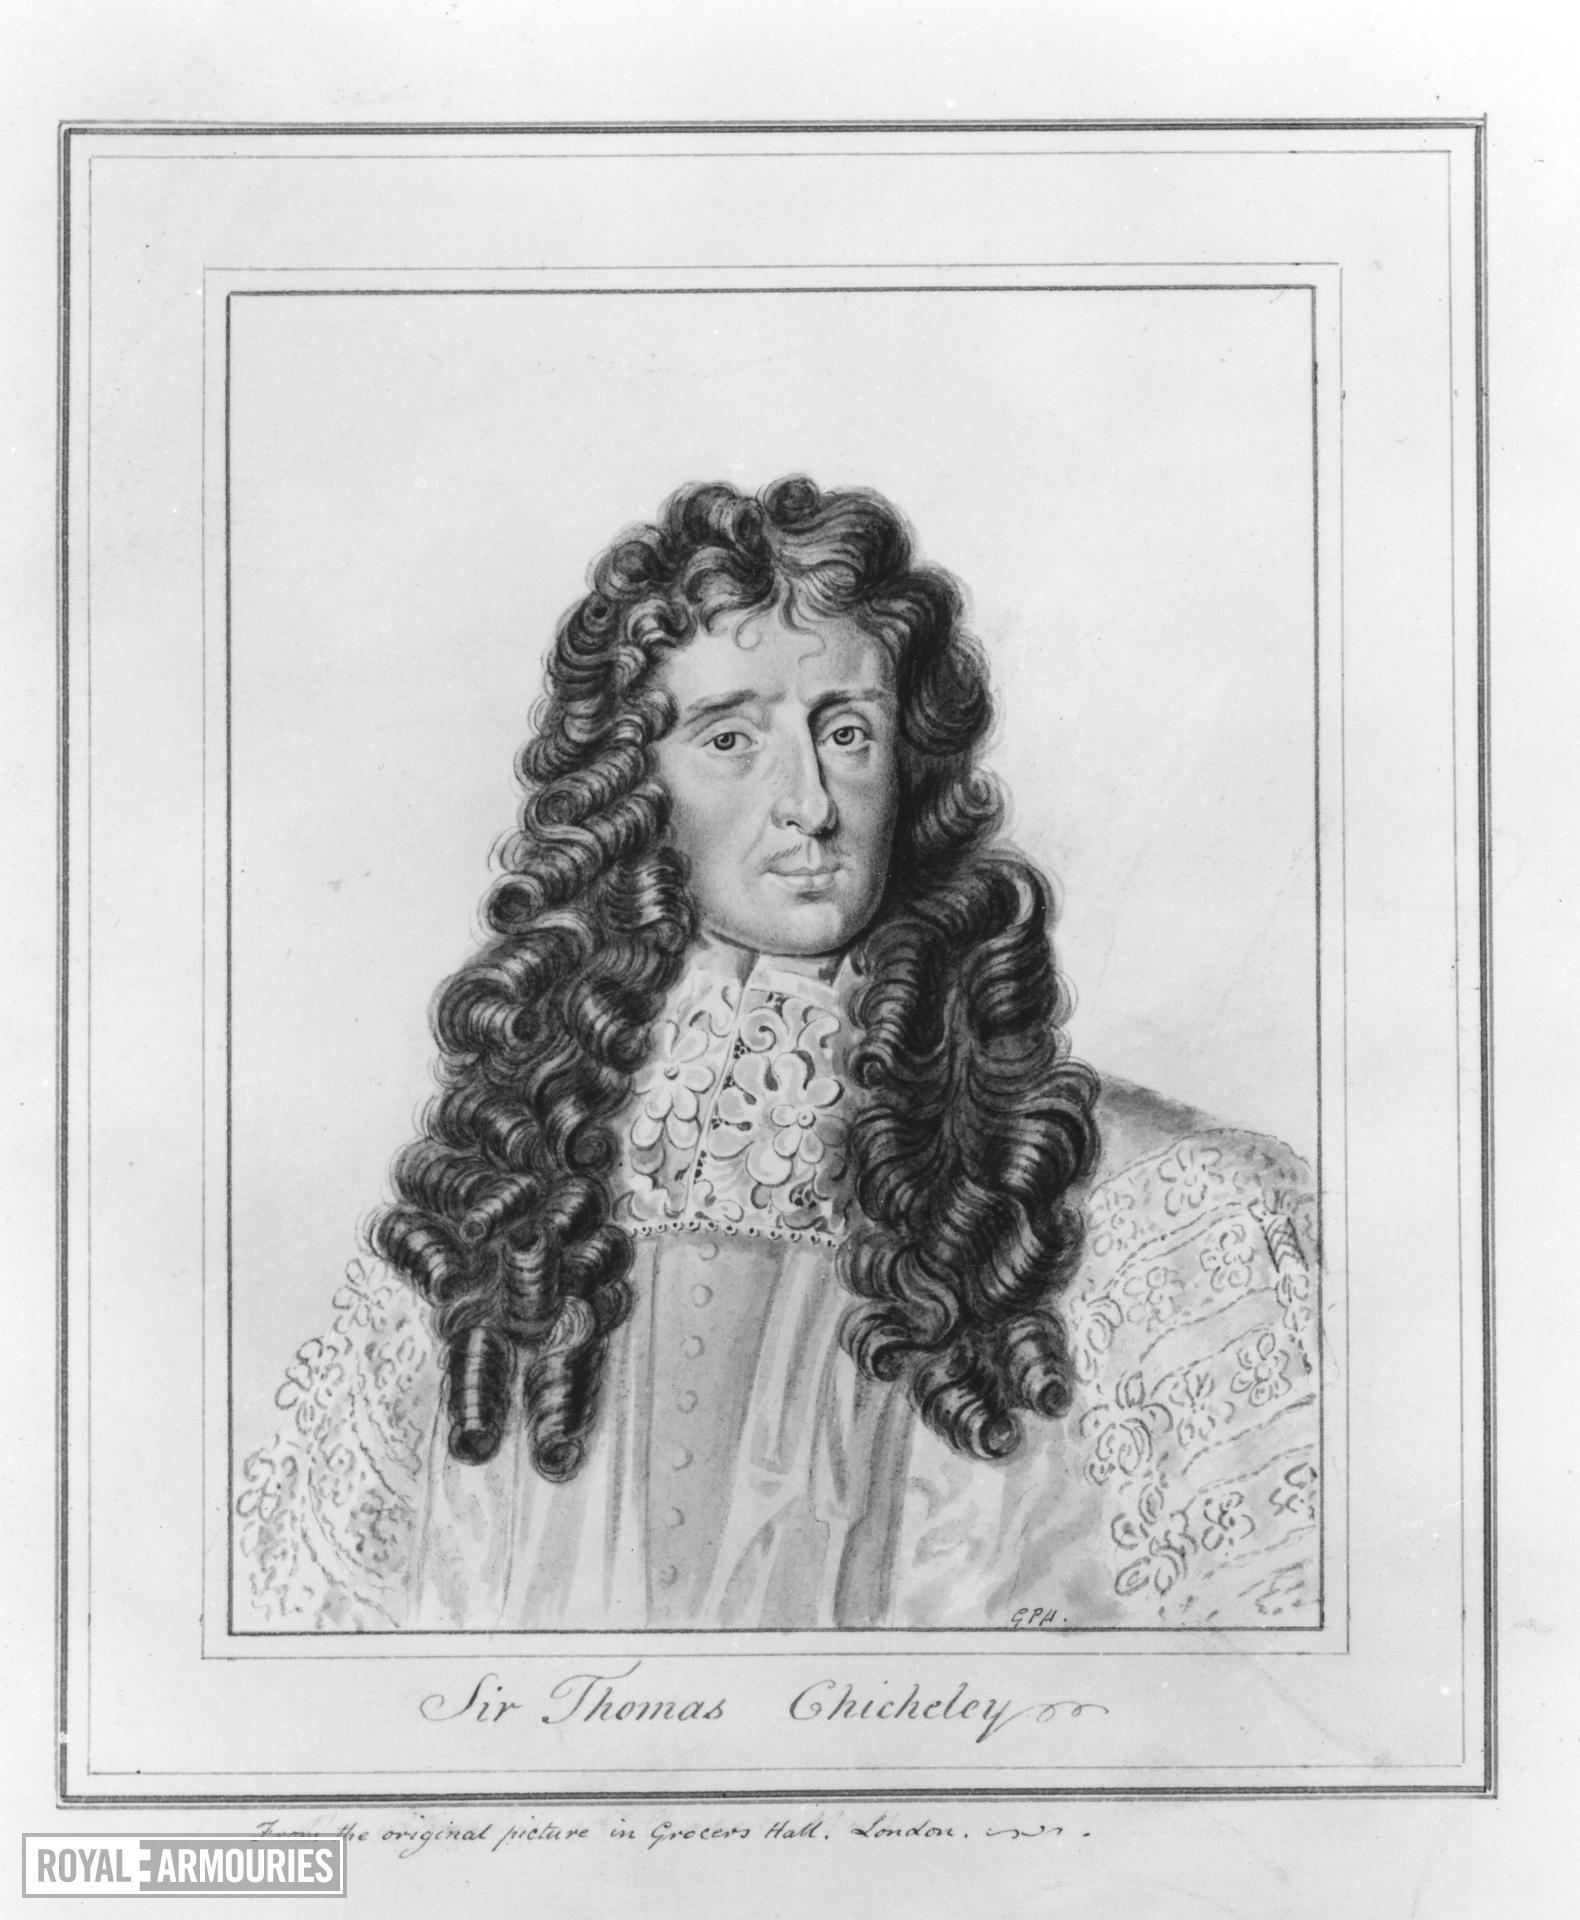 Drawing Portrait of Sir Thomas Chicheley, Master of the Ordnance, 1670-1679.